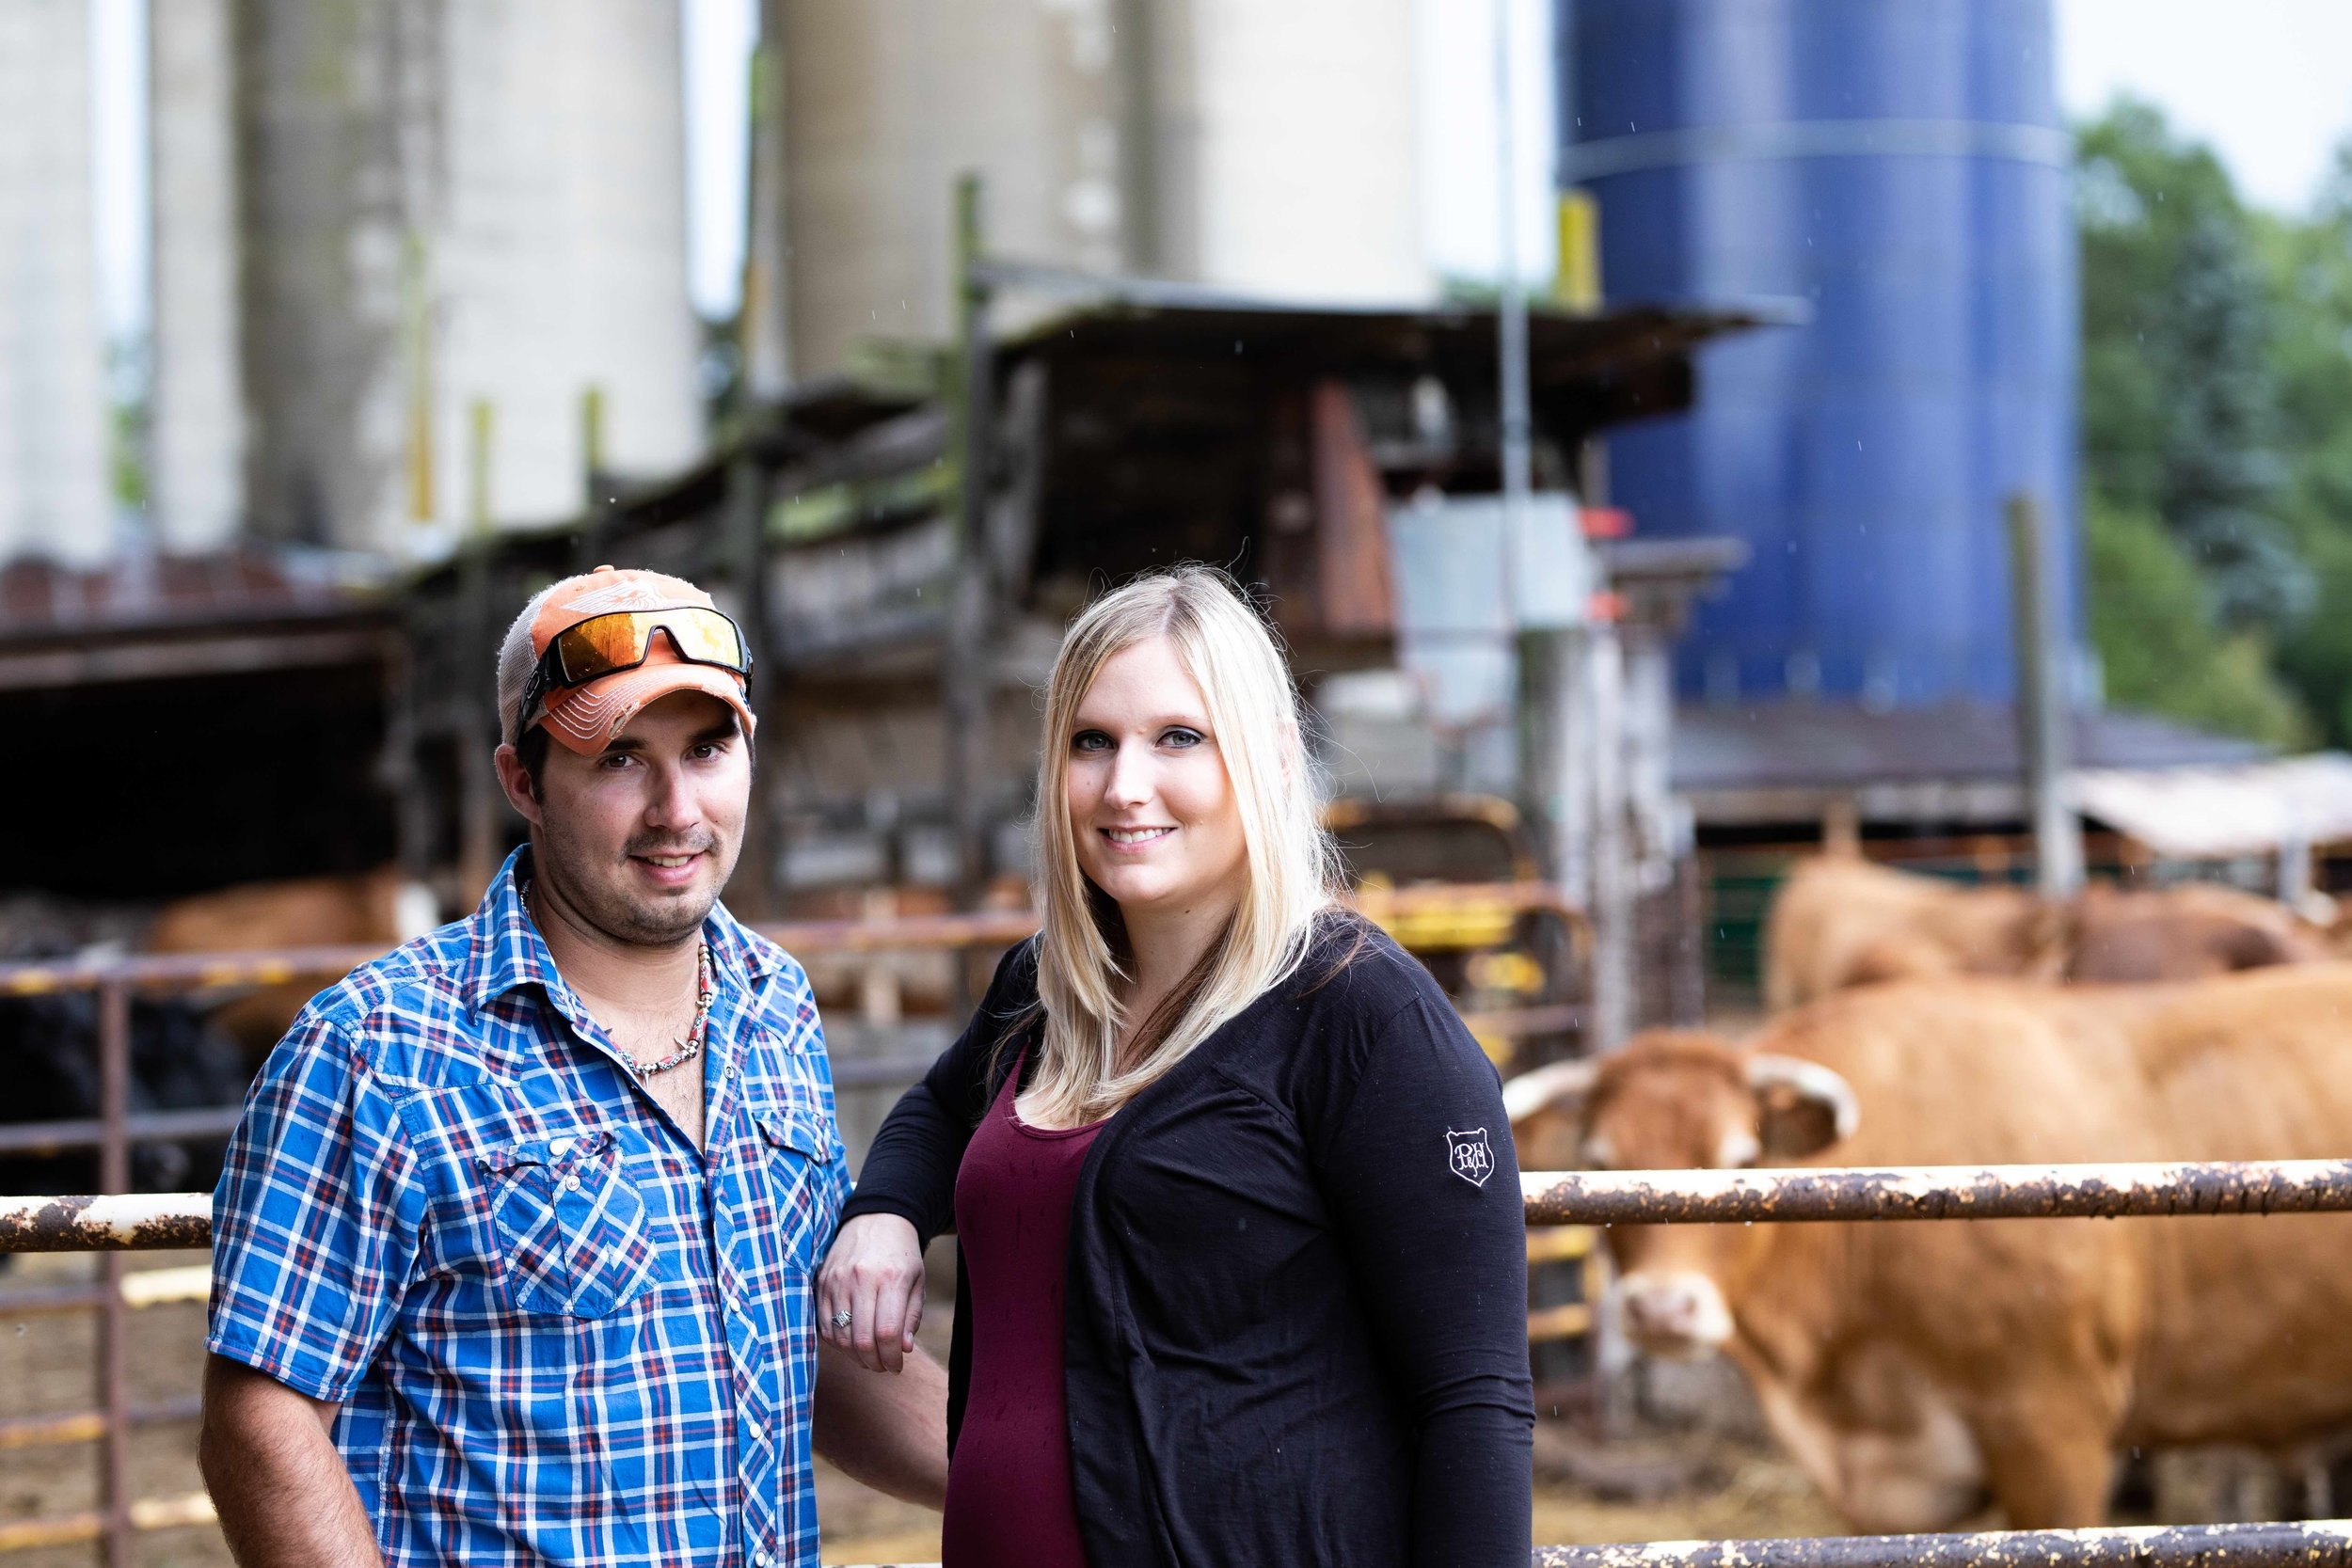 Jodie-Aldred-Photography-Chatham-Kent-Elgin-Middlesex-London-Ontario-Farm-Family-beef-couple.jpg